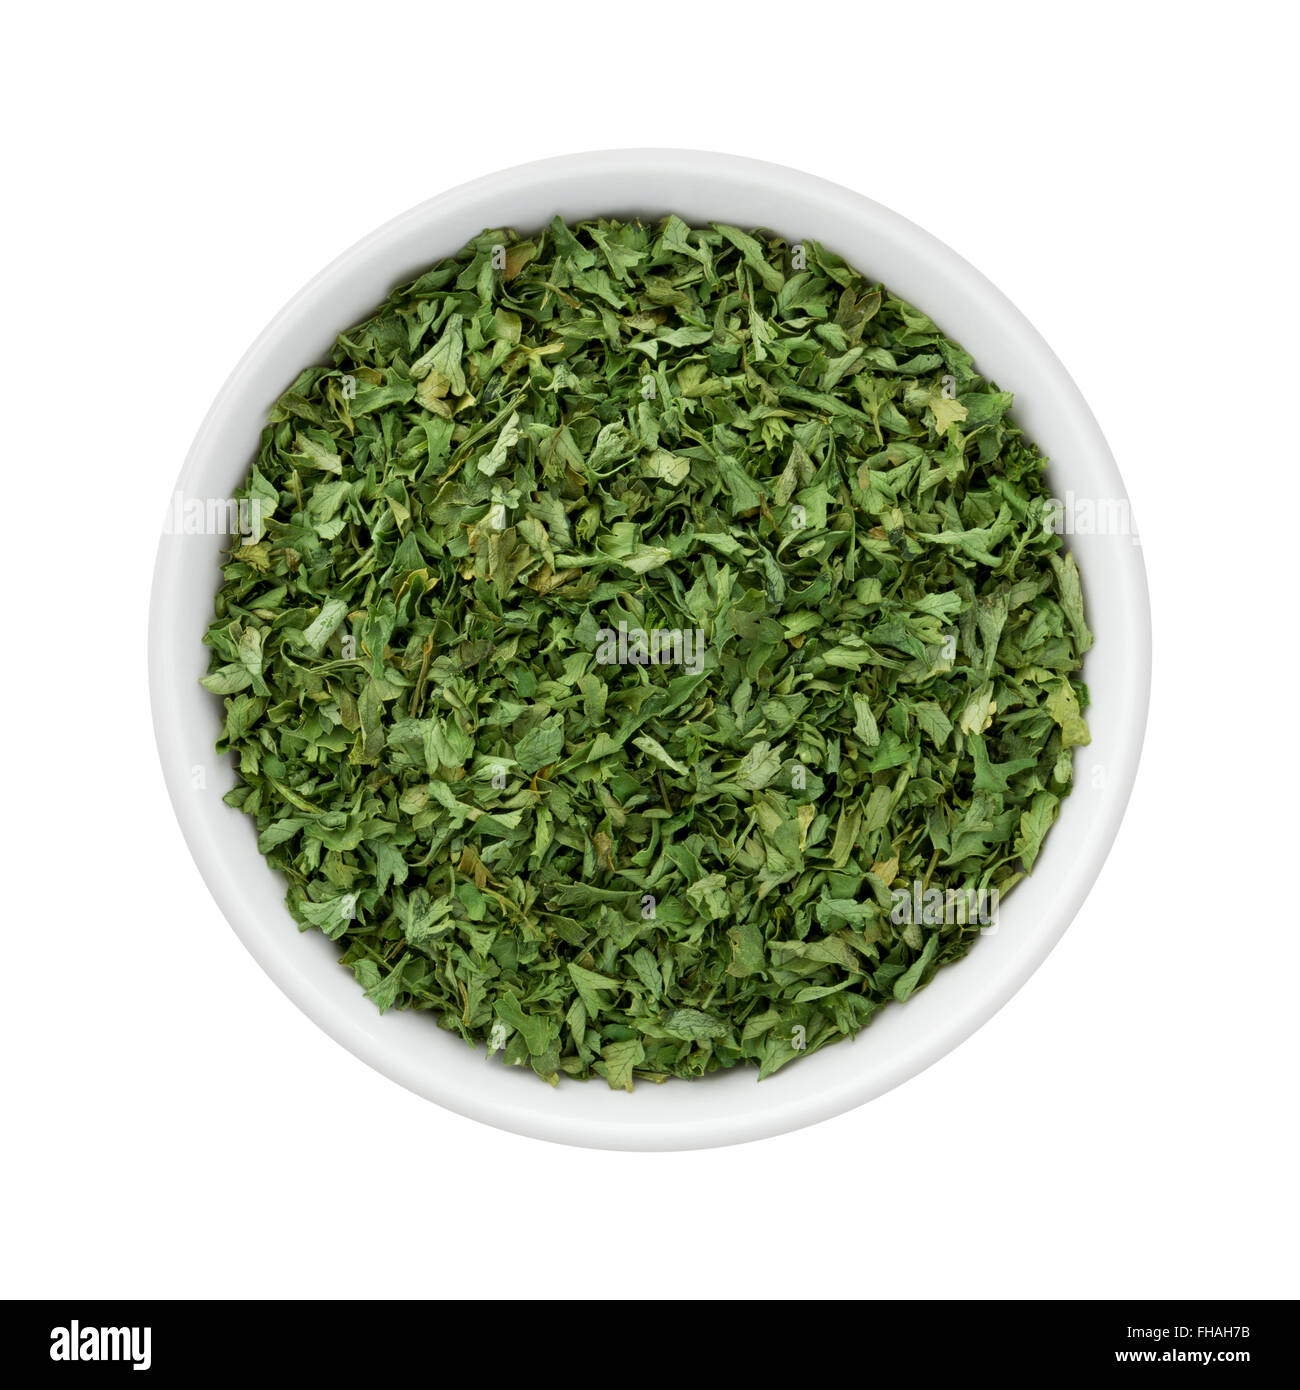 Dried Parsley Flakes in a Ceramic Bowl. The image is a cut out, isolated on a white background. - Stock Image